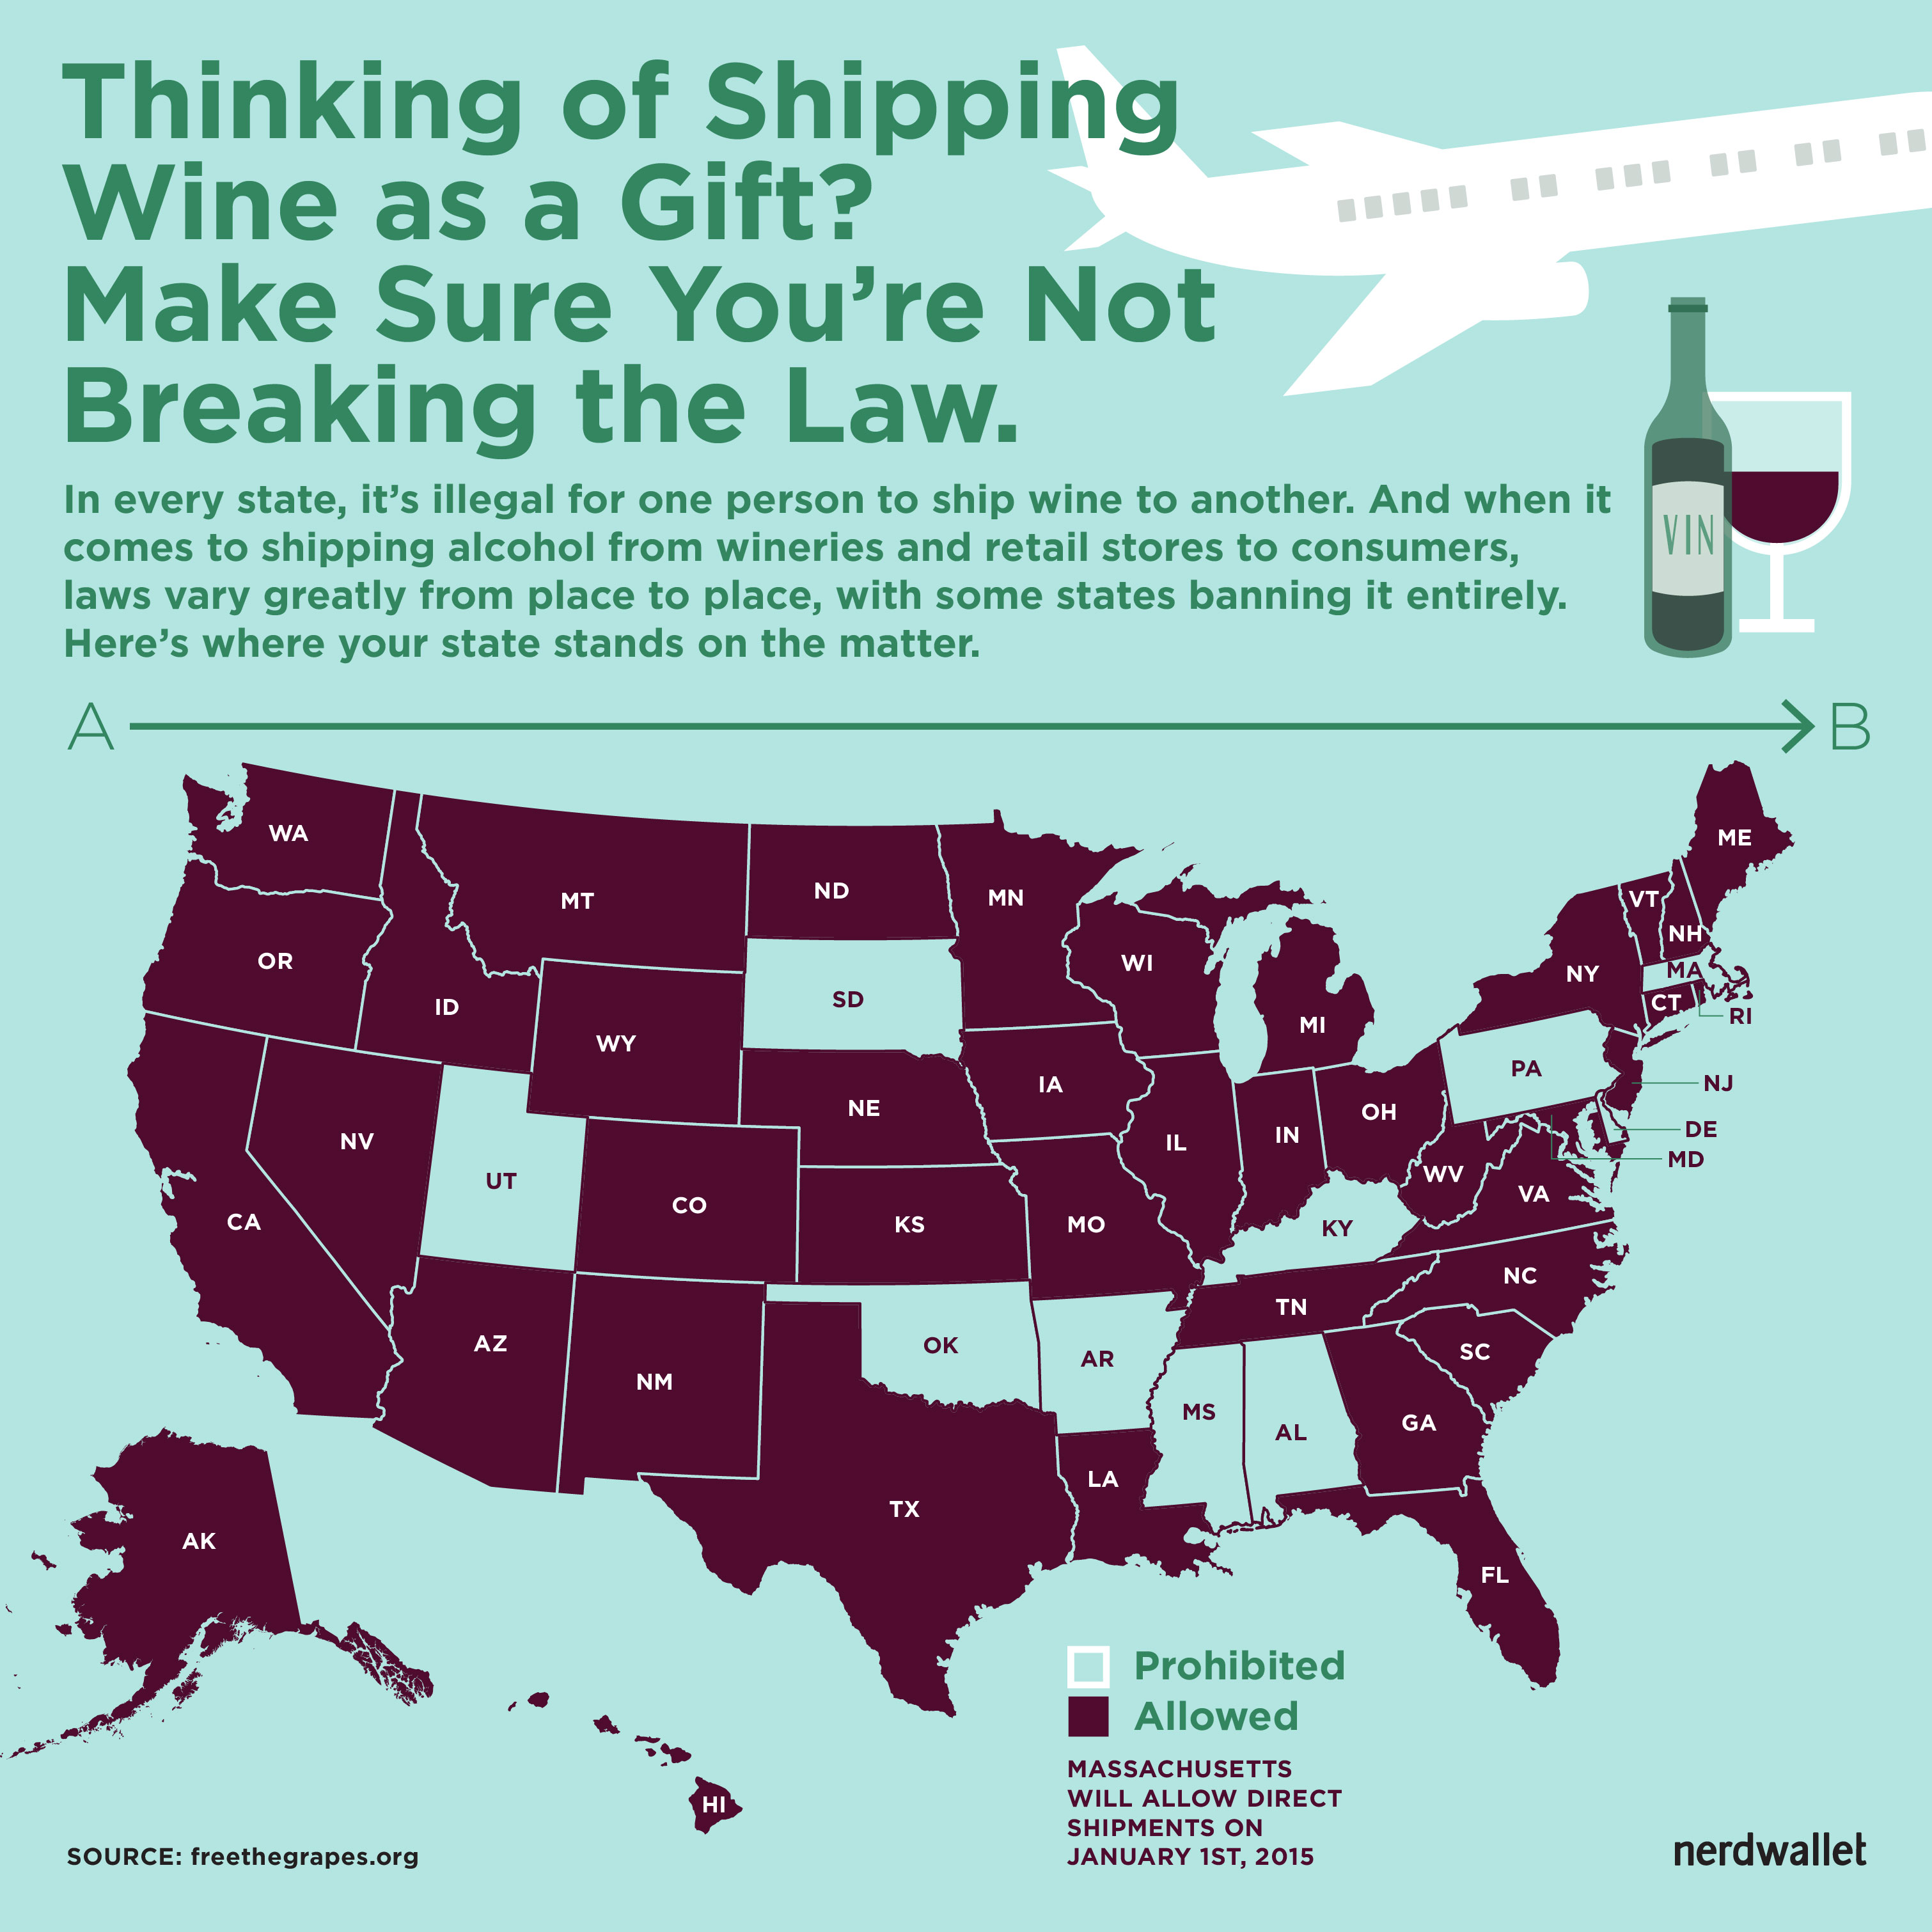 Wine as a Gift Without Breaking the Law